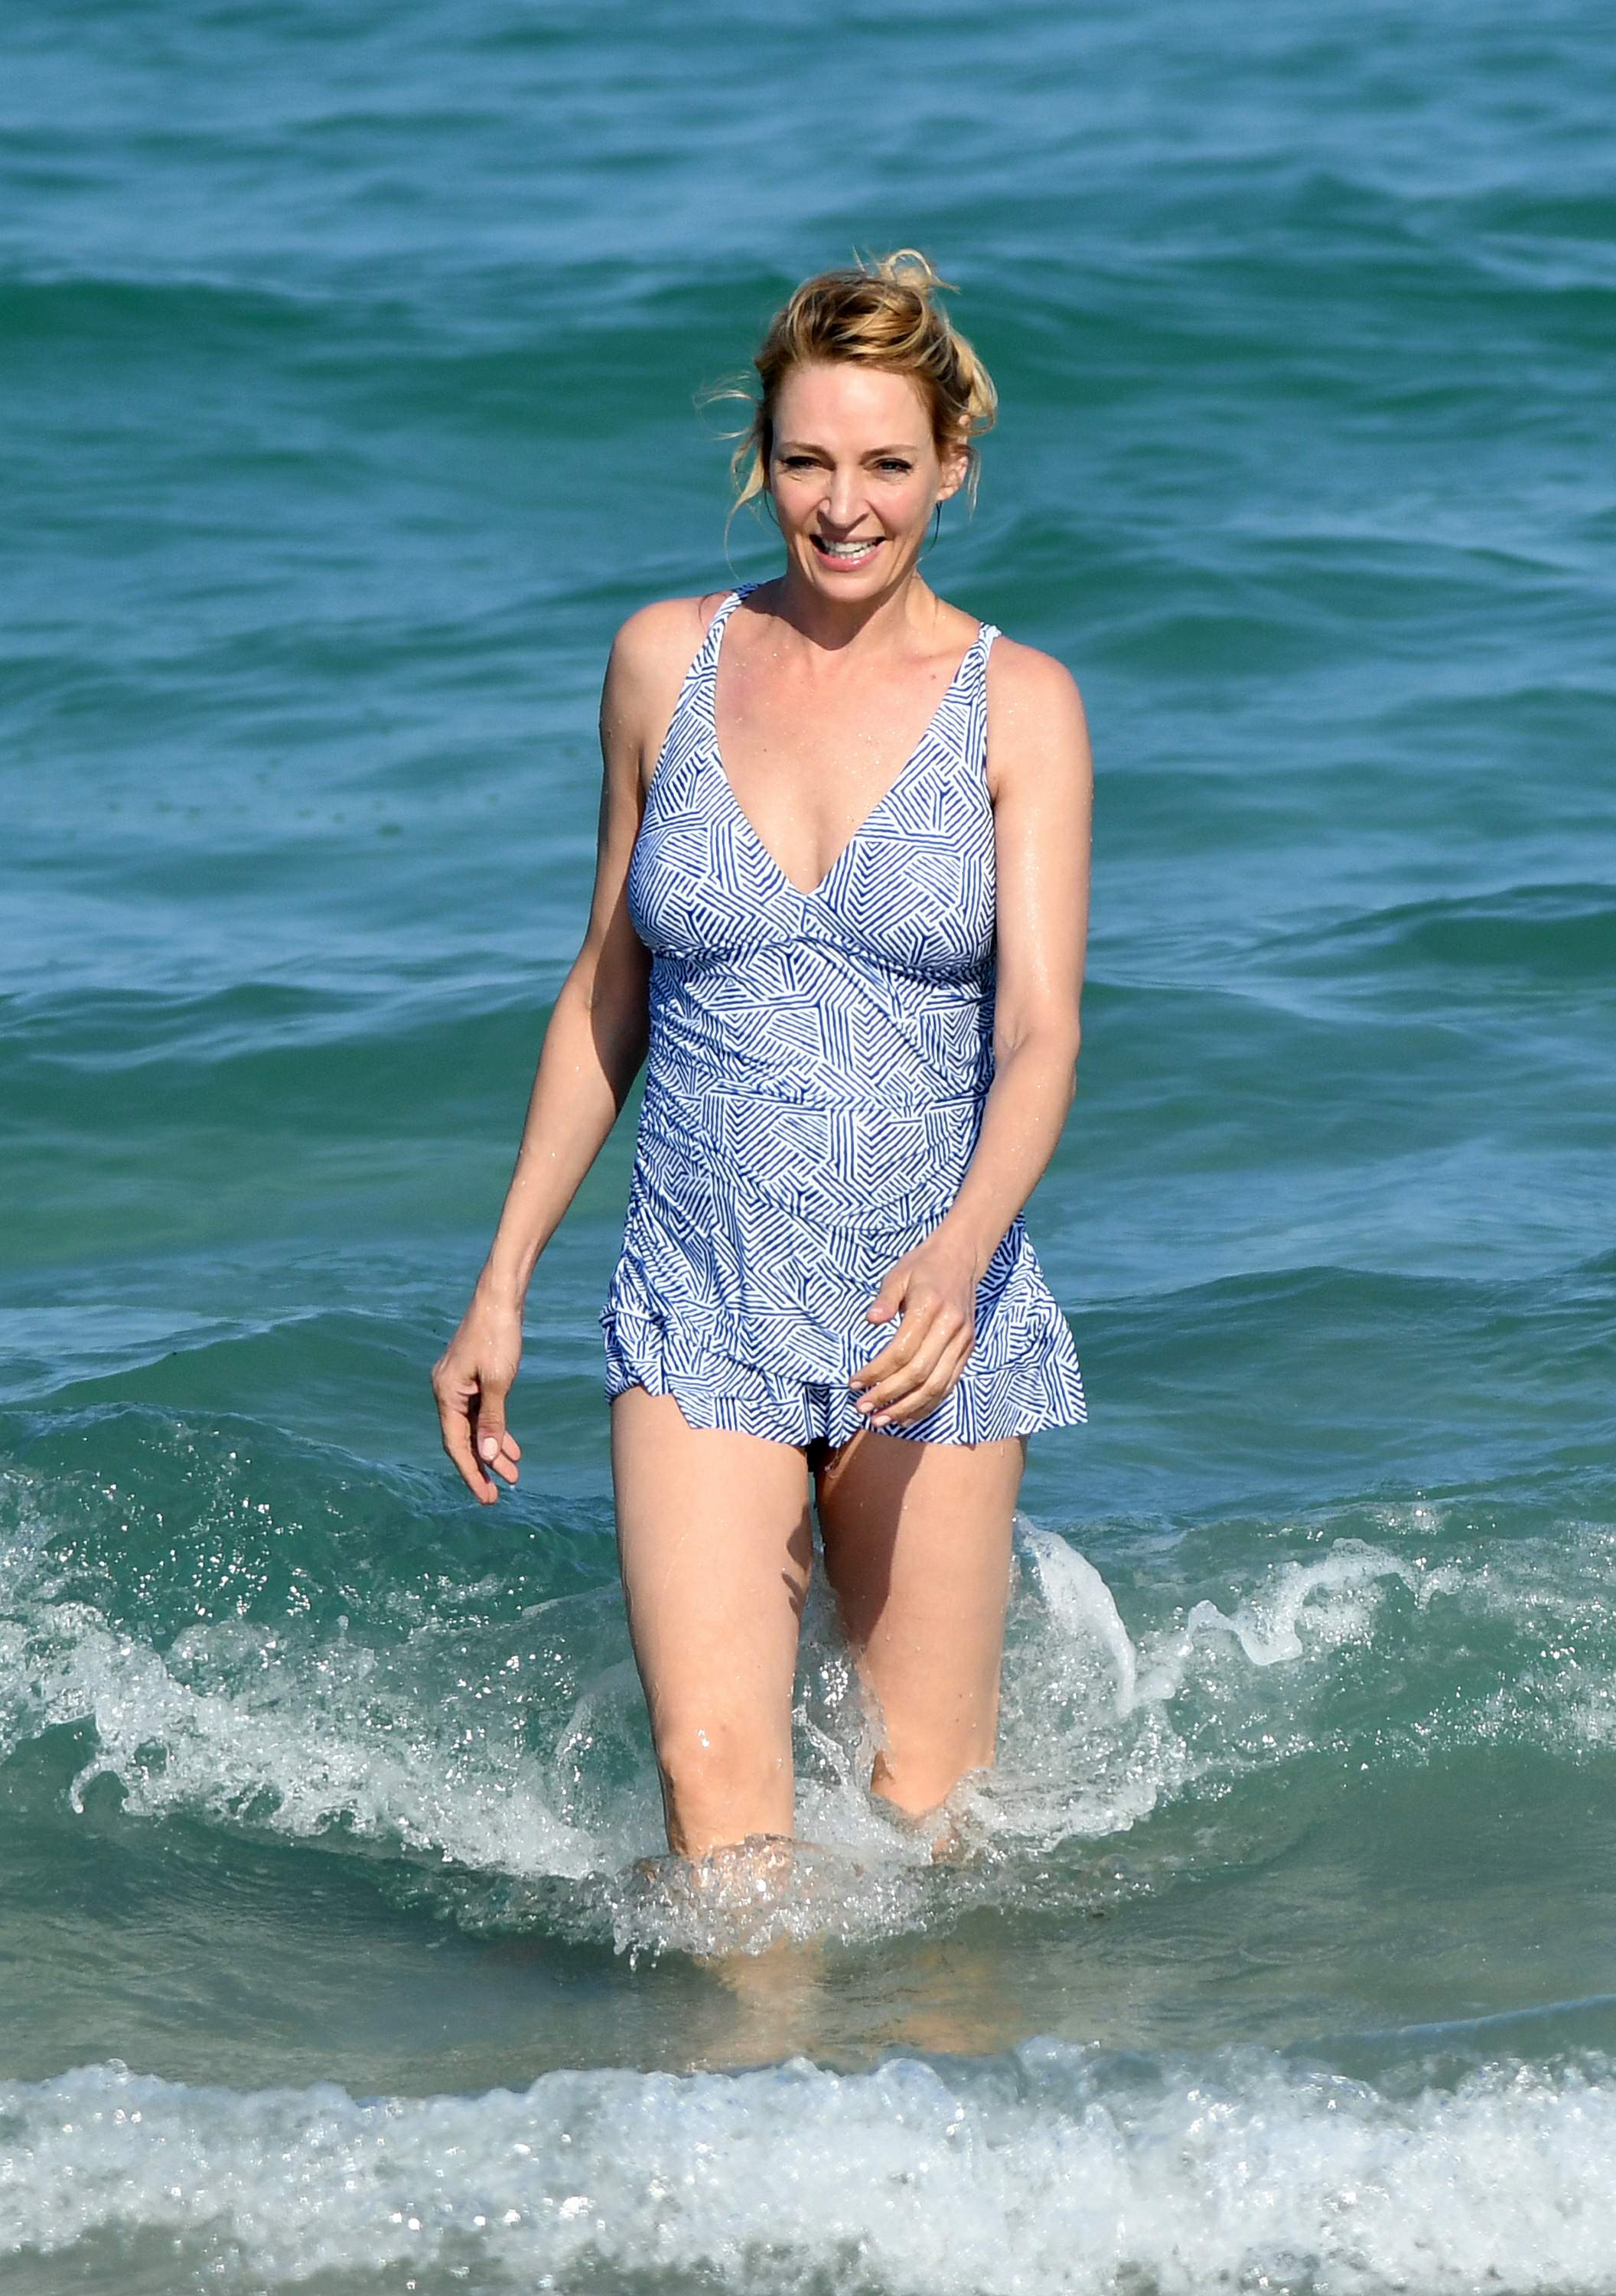 Uma Thurman sexy – The Fappening Leaked Photos 2015-2020